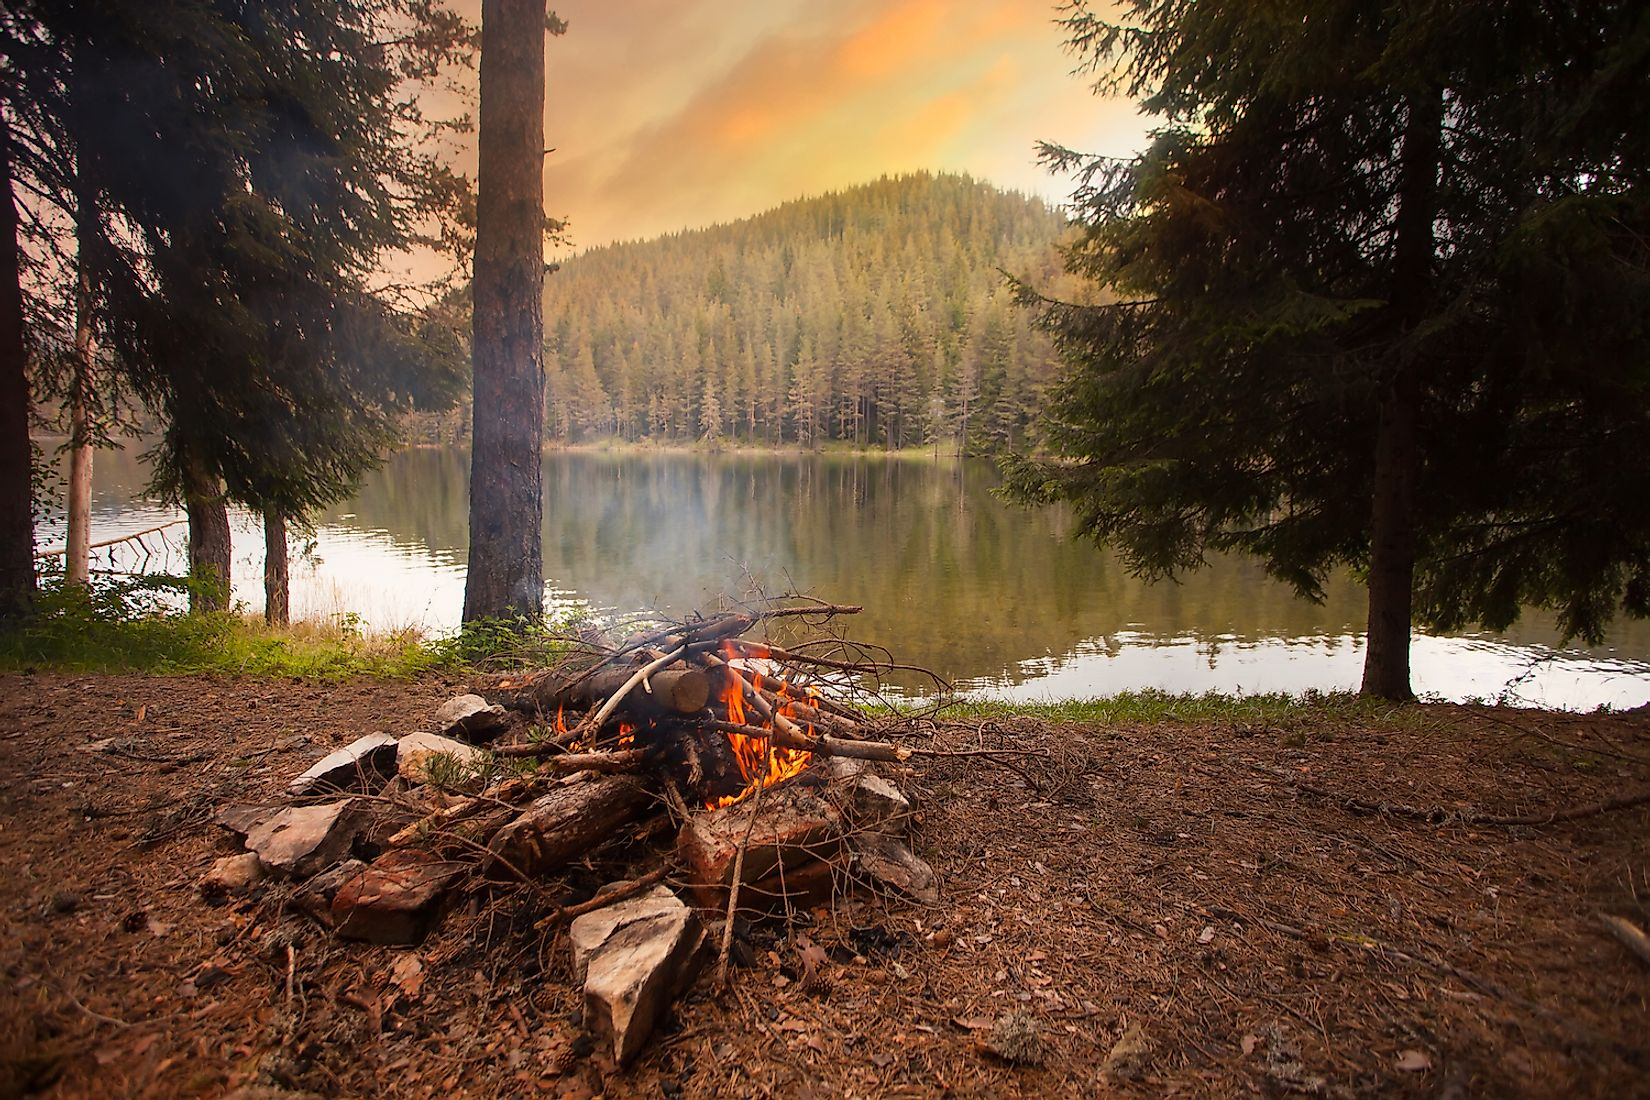 Campfires not douses out completely can lead to wildfires. Image credit: SSokolov/Shutterstock.com